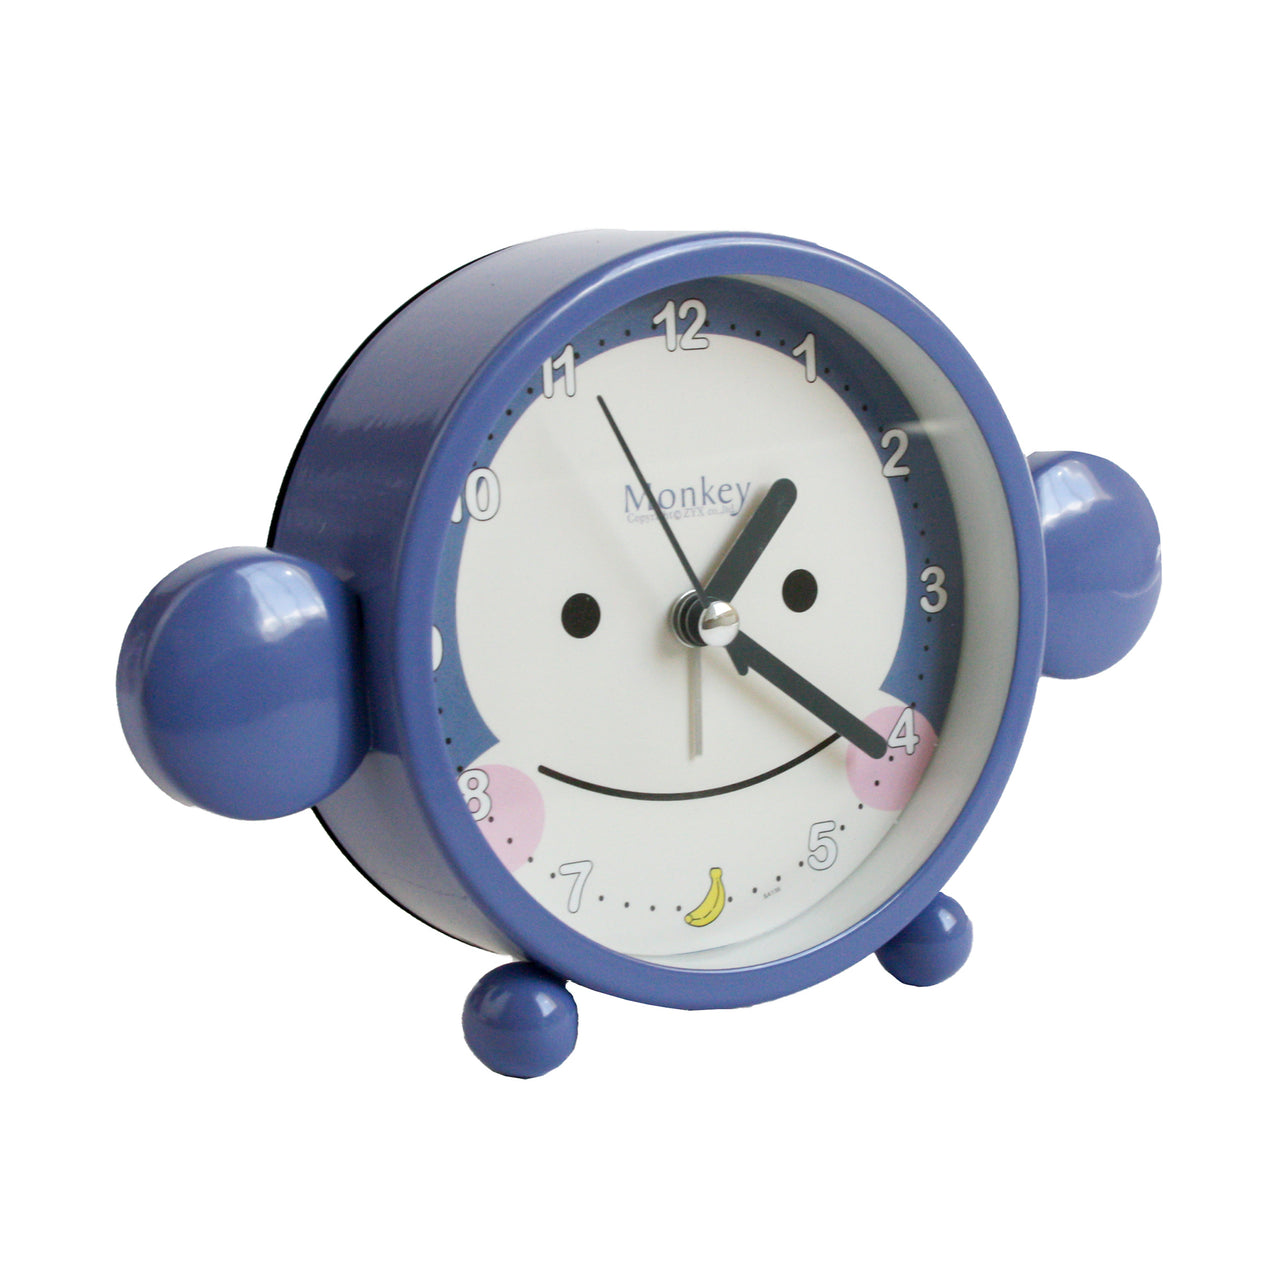 Monkey Alarm Clock - Blue